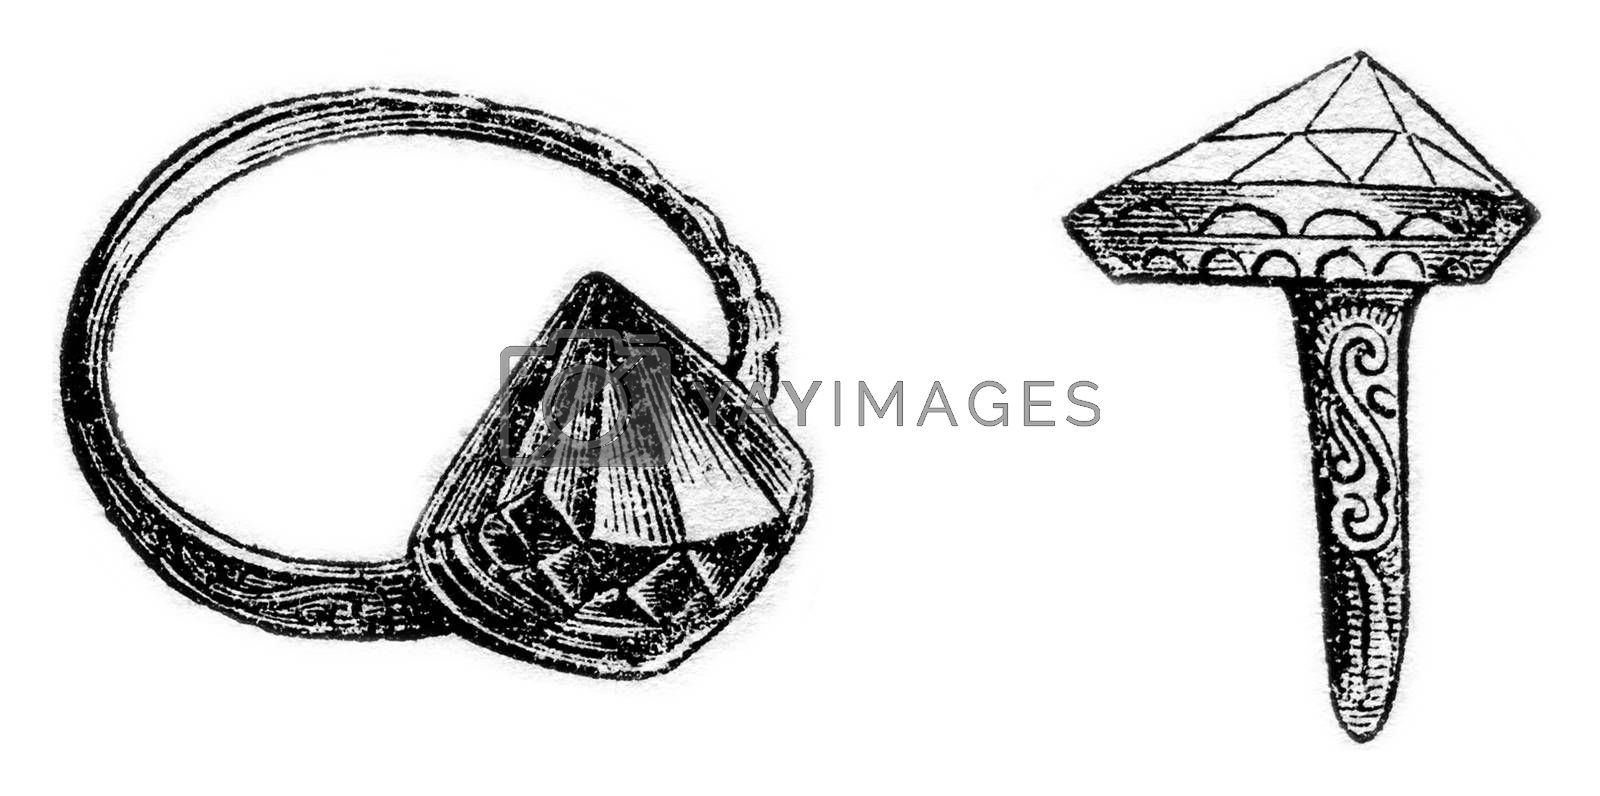 The ring of the Earl of Essex, vintage engraved illustration. Magasin Pittoresque 1869.